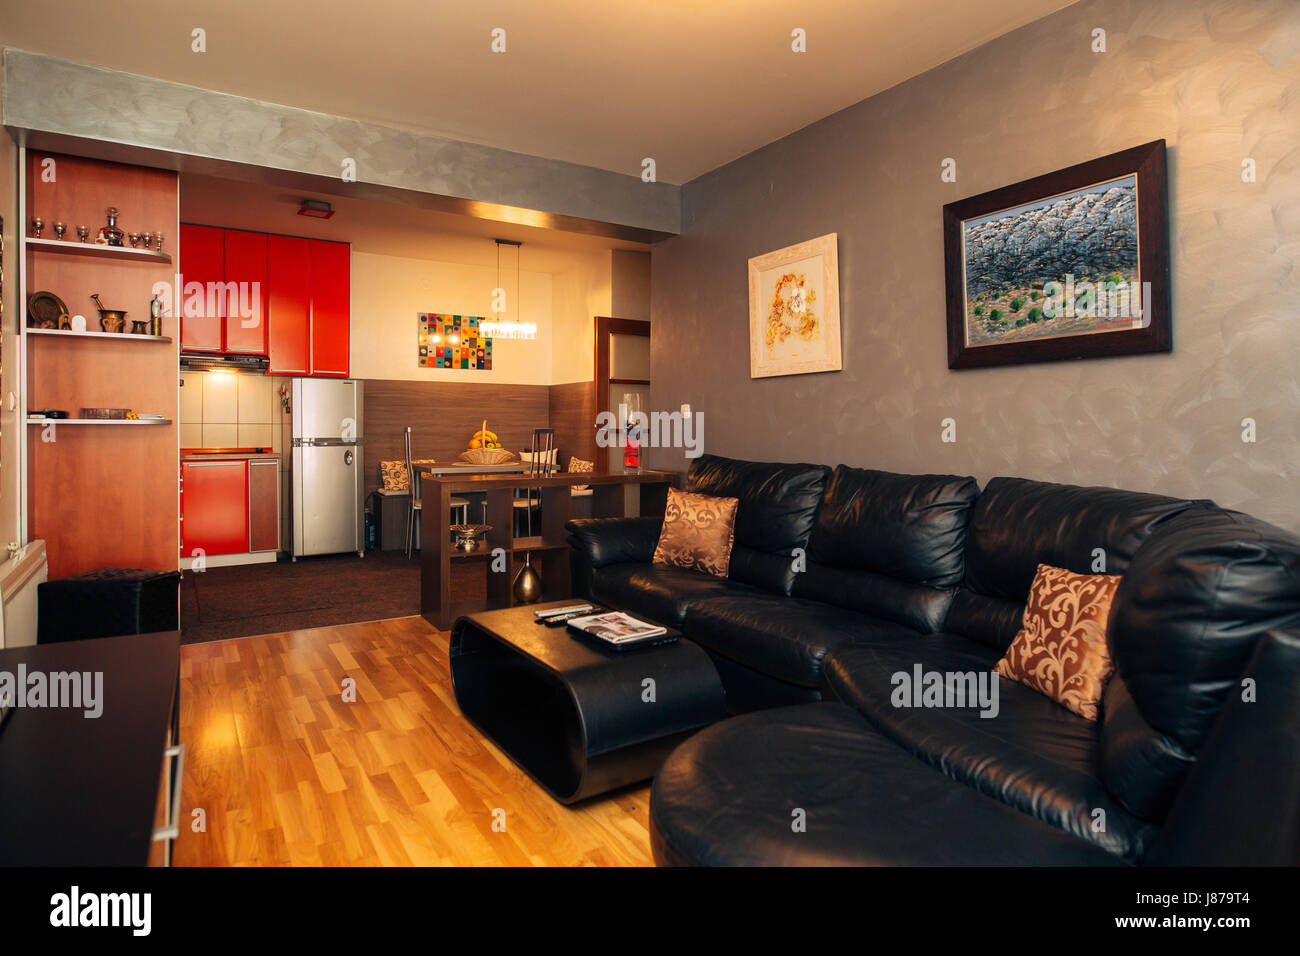 Commercial Office Paint Color Ideas, Black Leather Sofa In The Apartment Interior Living Room Stock Photo Alamy